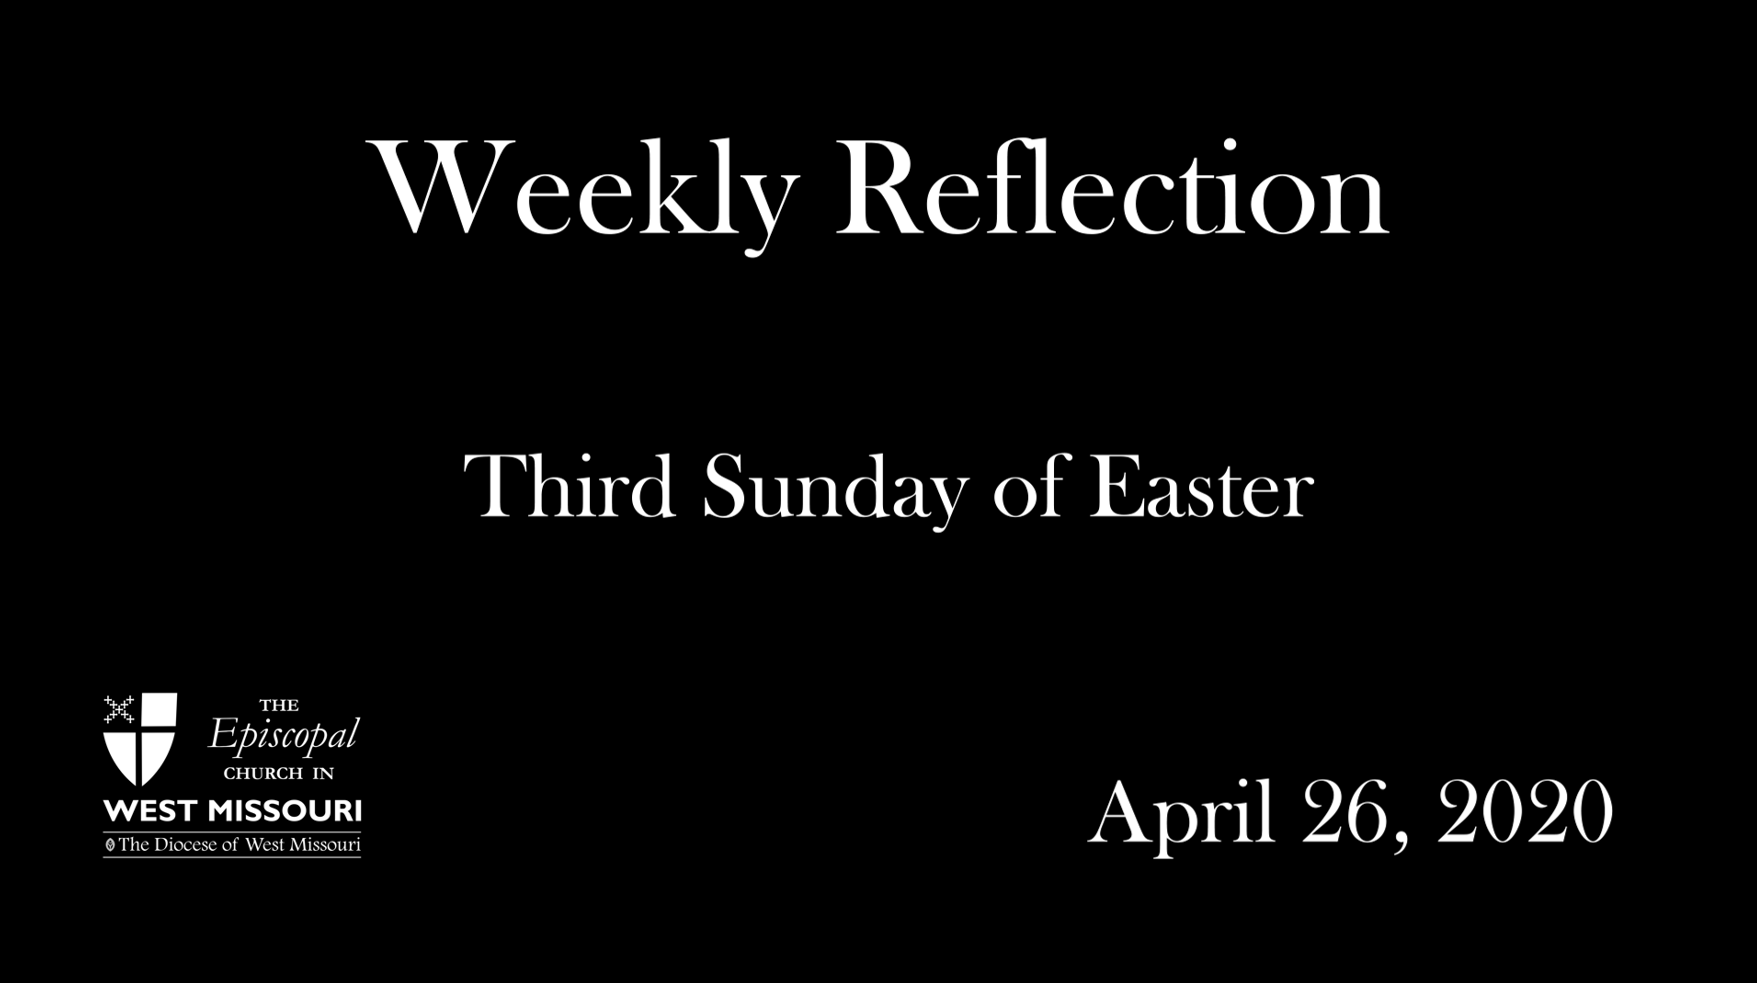 Weekly Reflection – Third Sunday of Easter